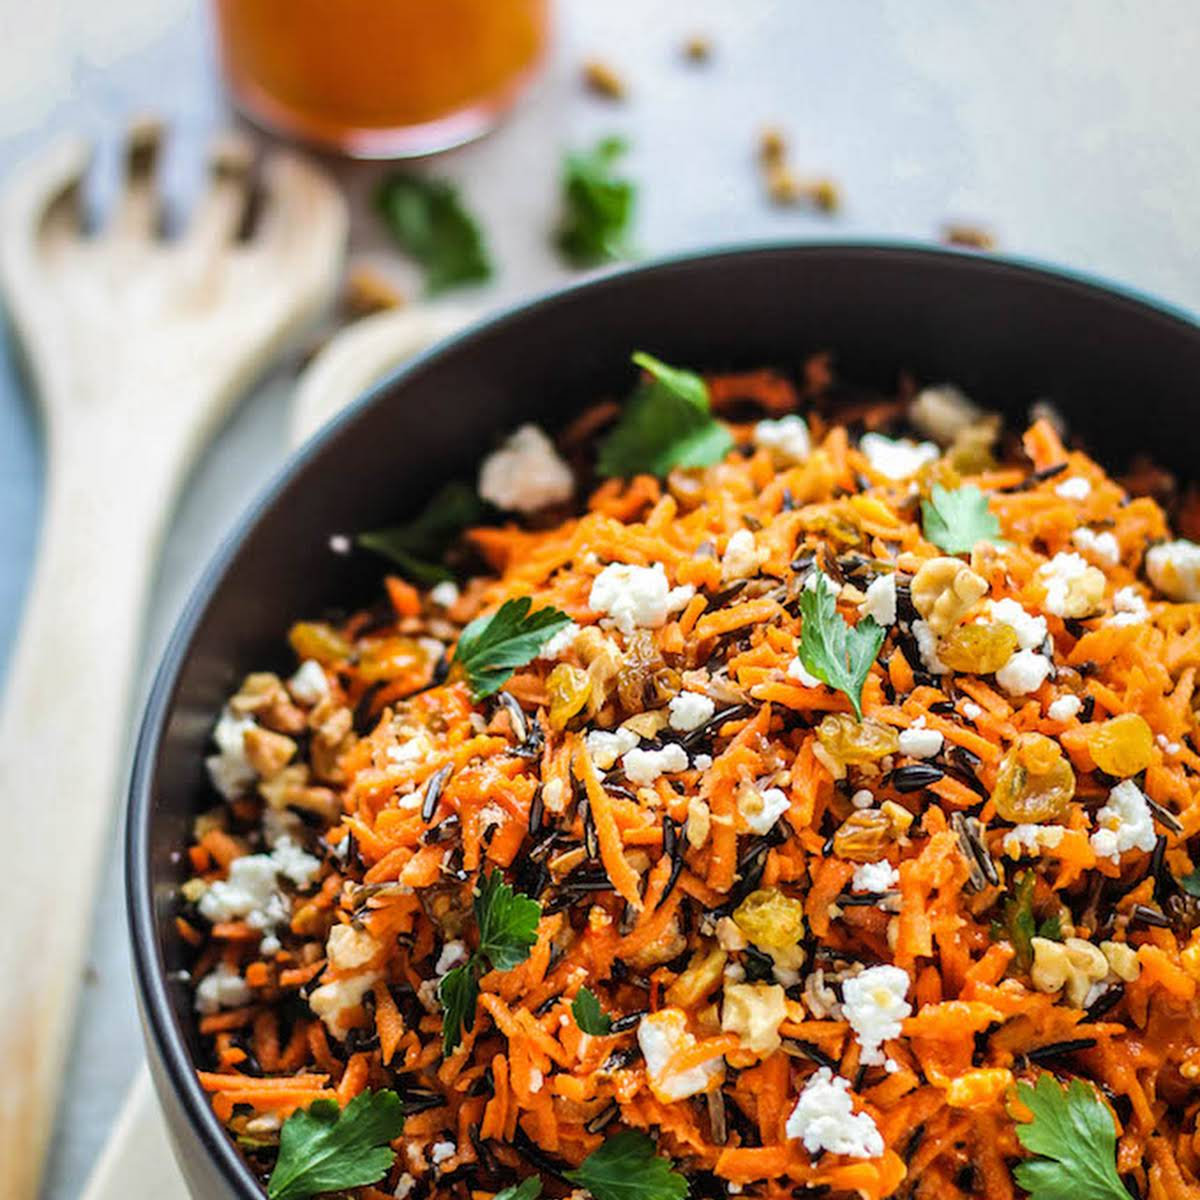 Shredded Carrot and Wild Rice Salad